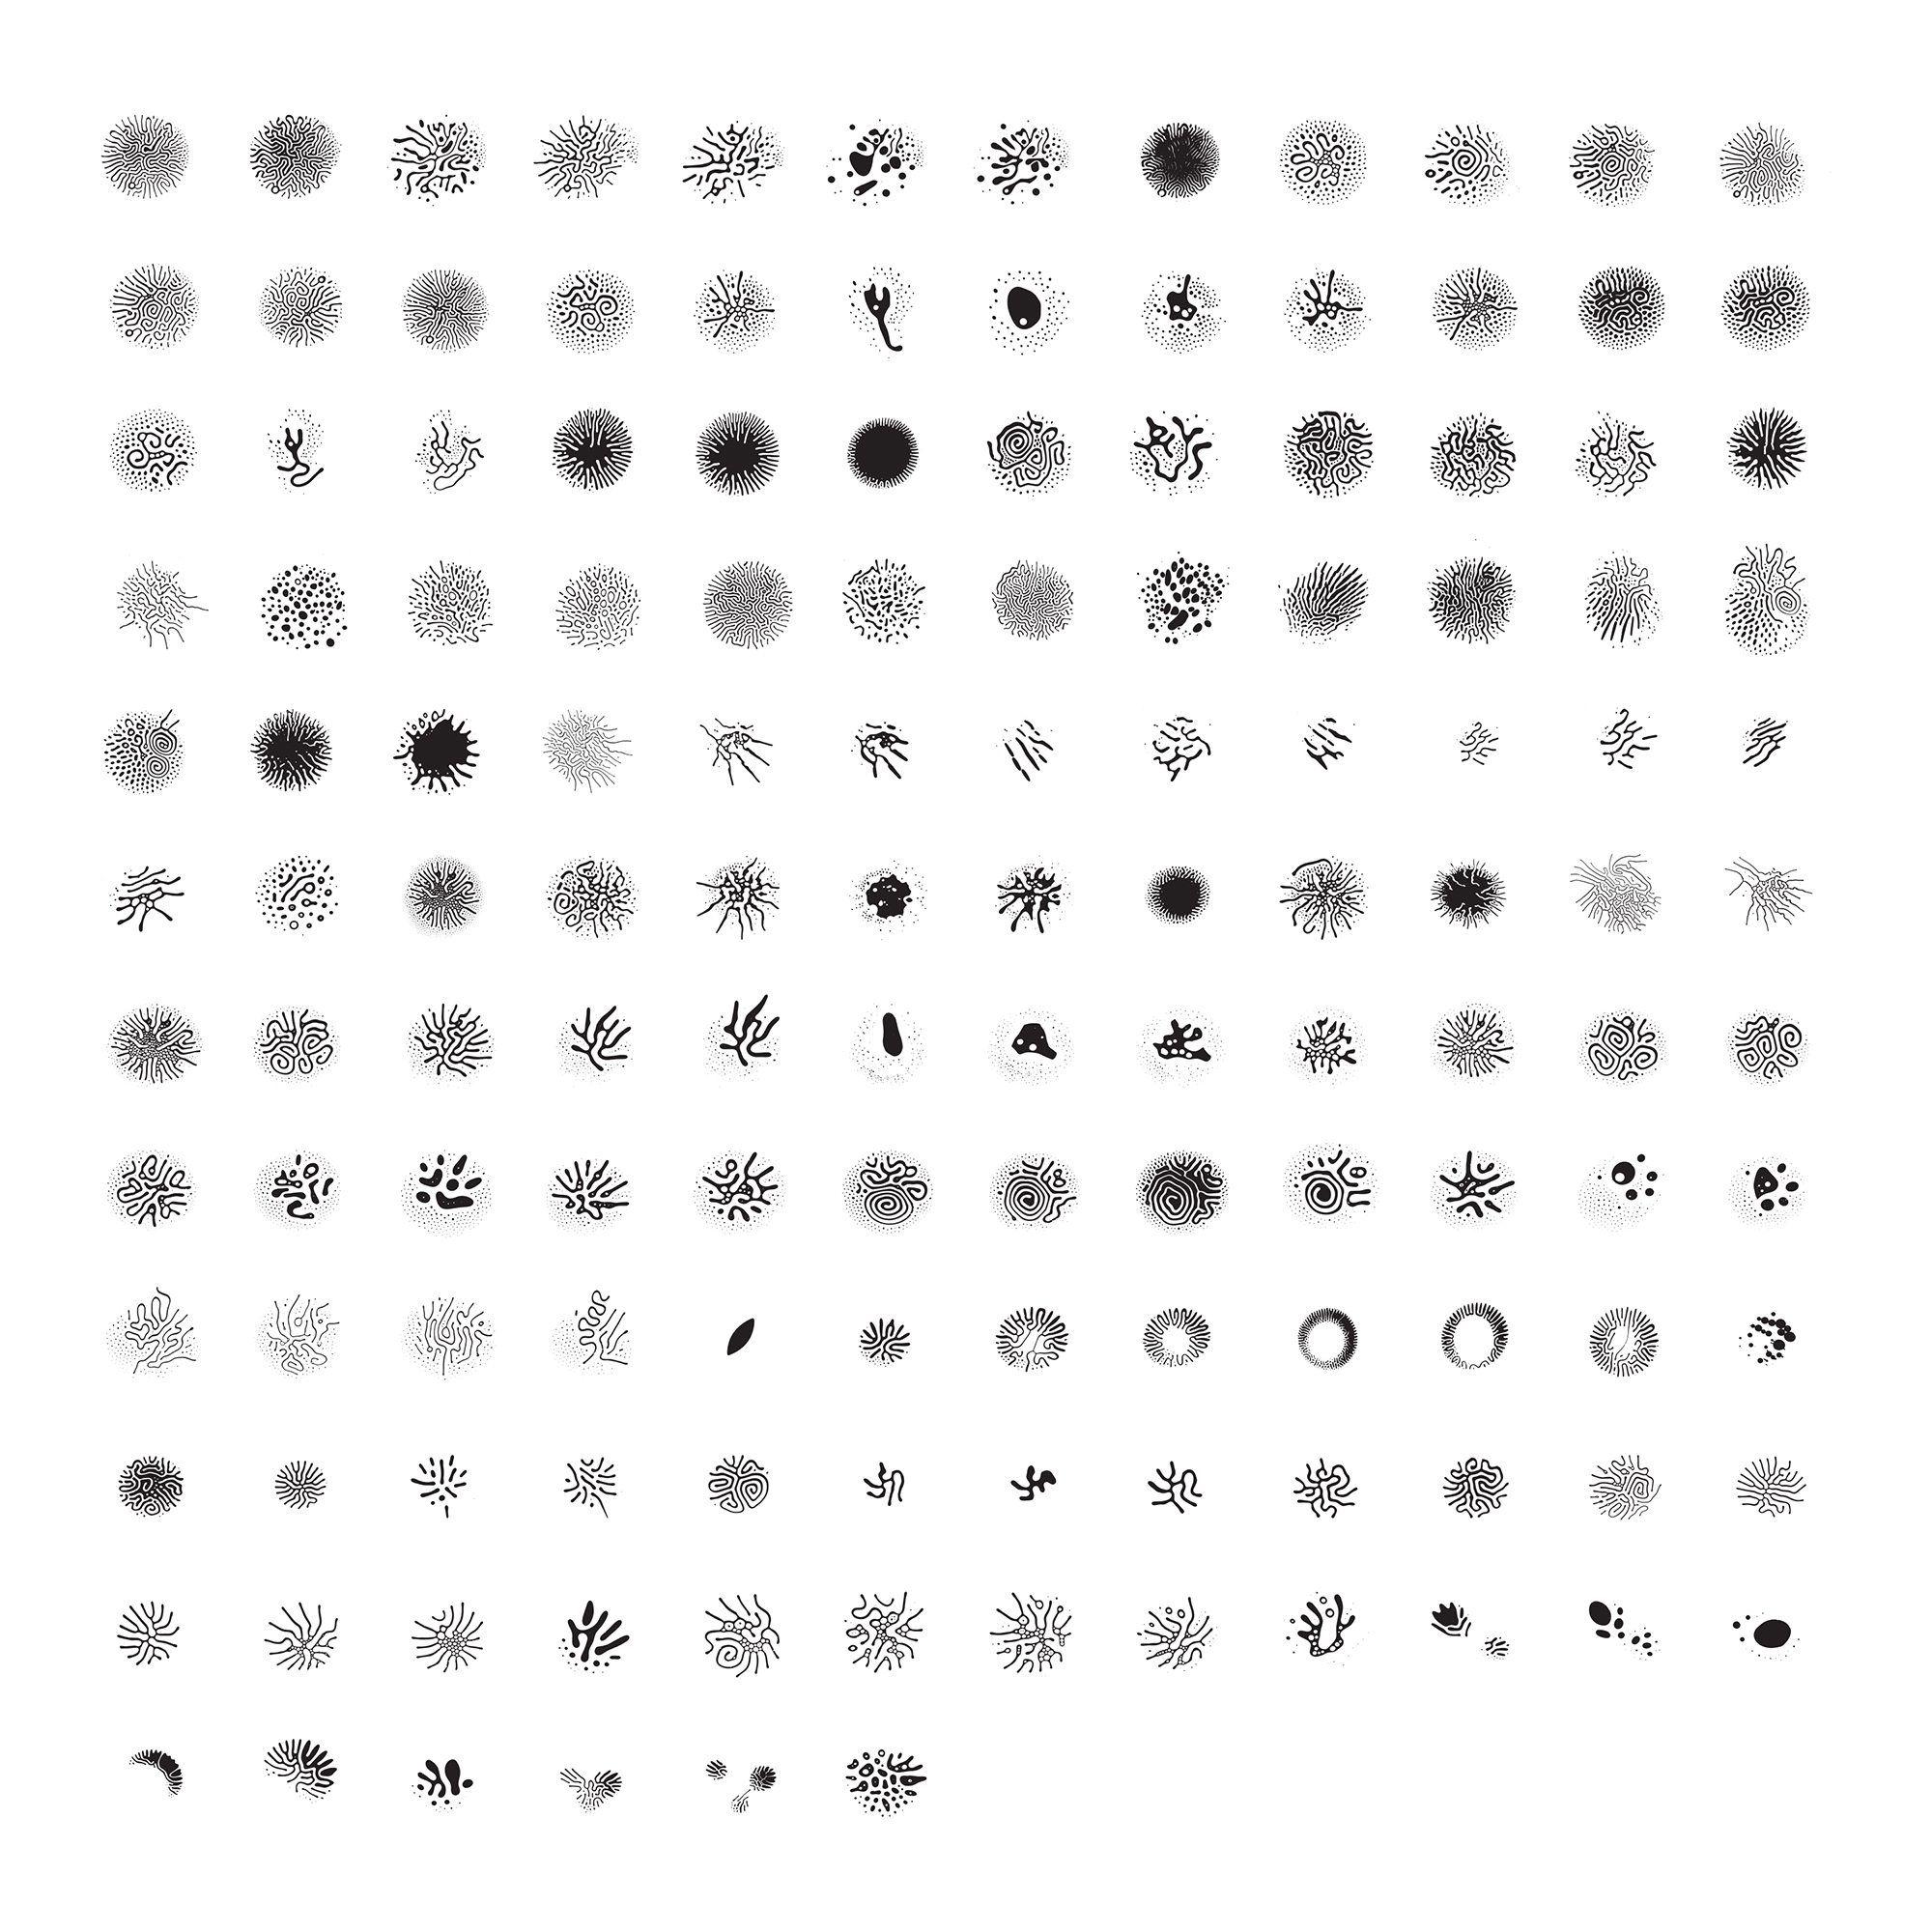 What are Glyphs